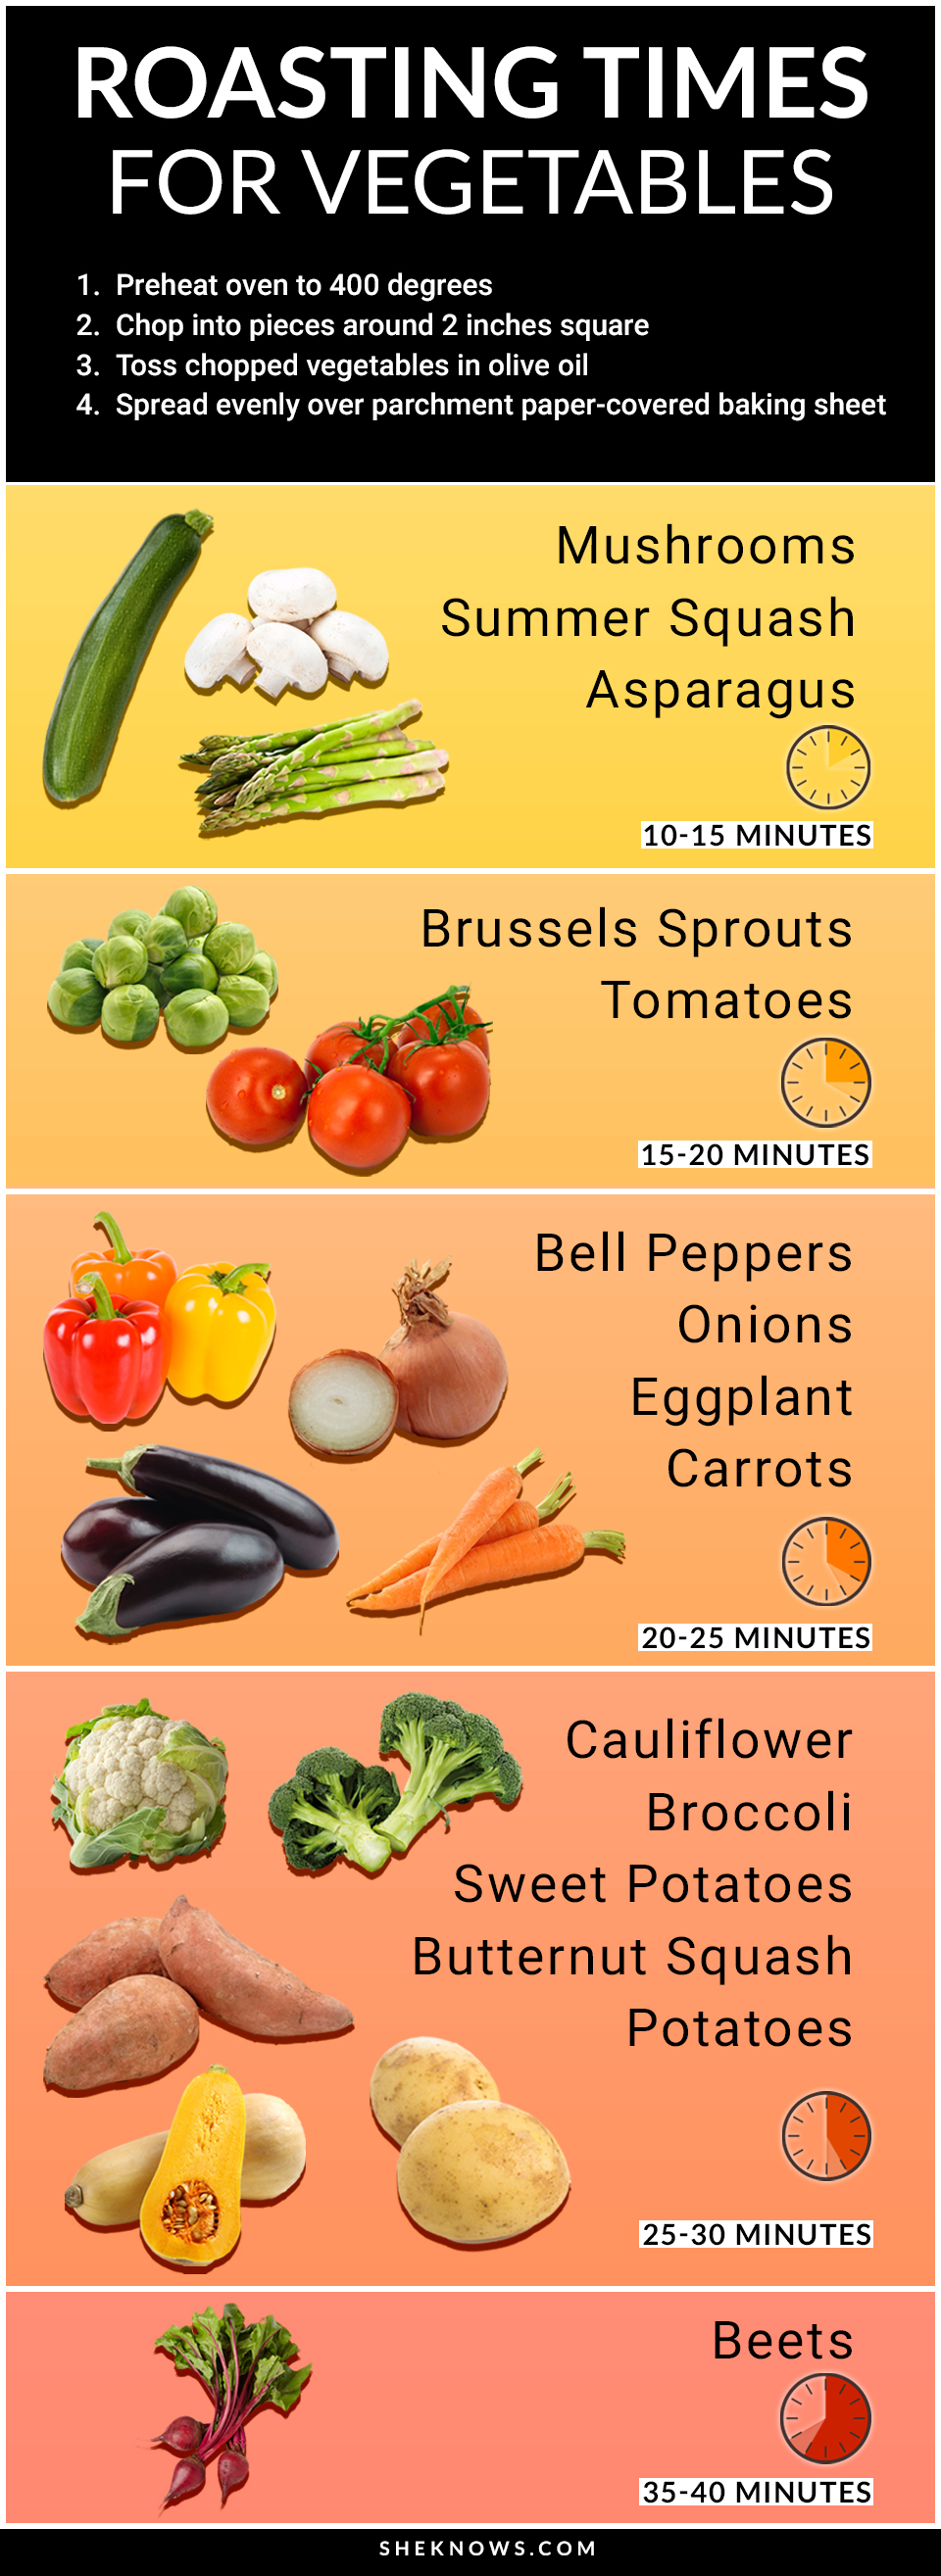 Roasting Vegetables: The Time Guide Infographic